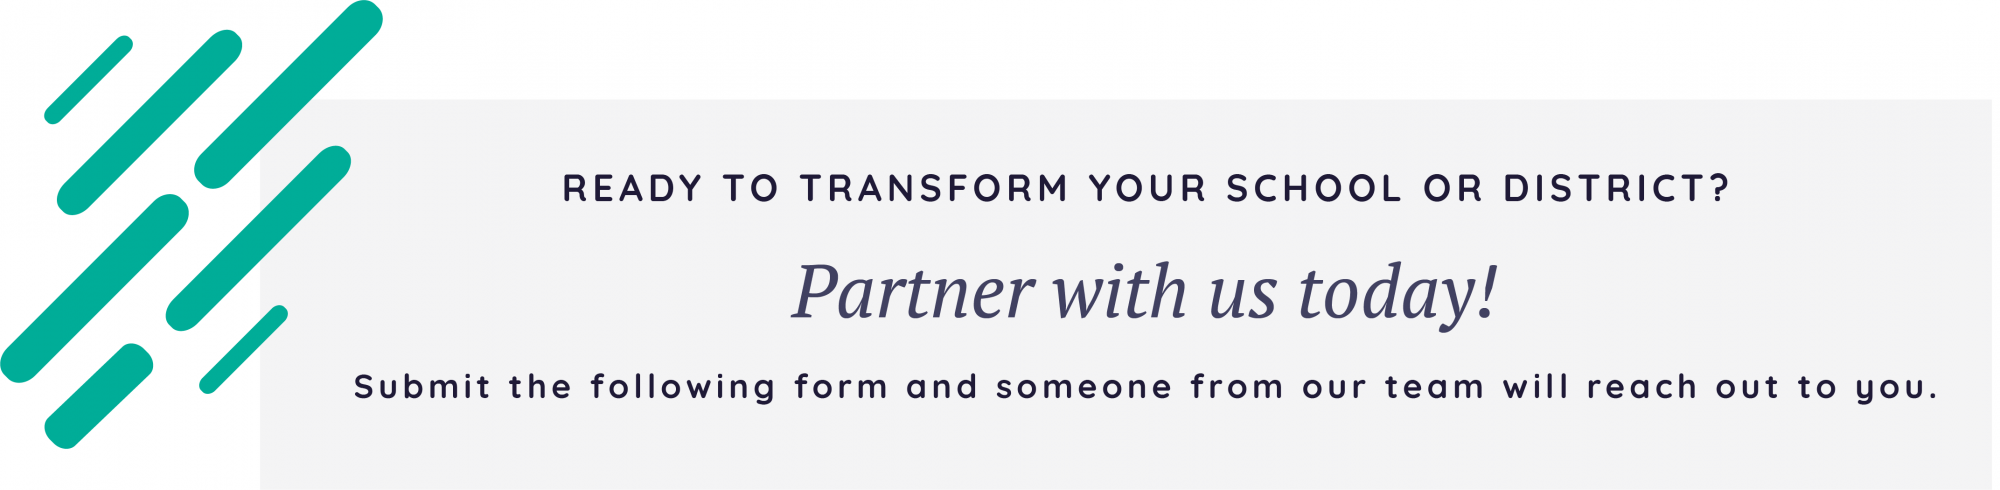 partner_with_us